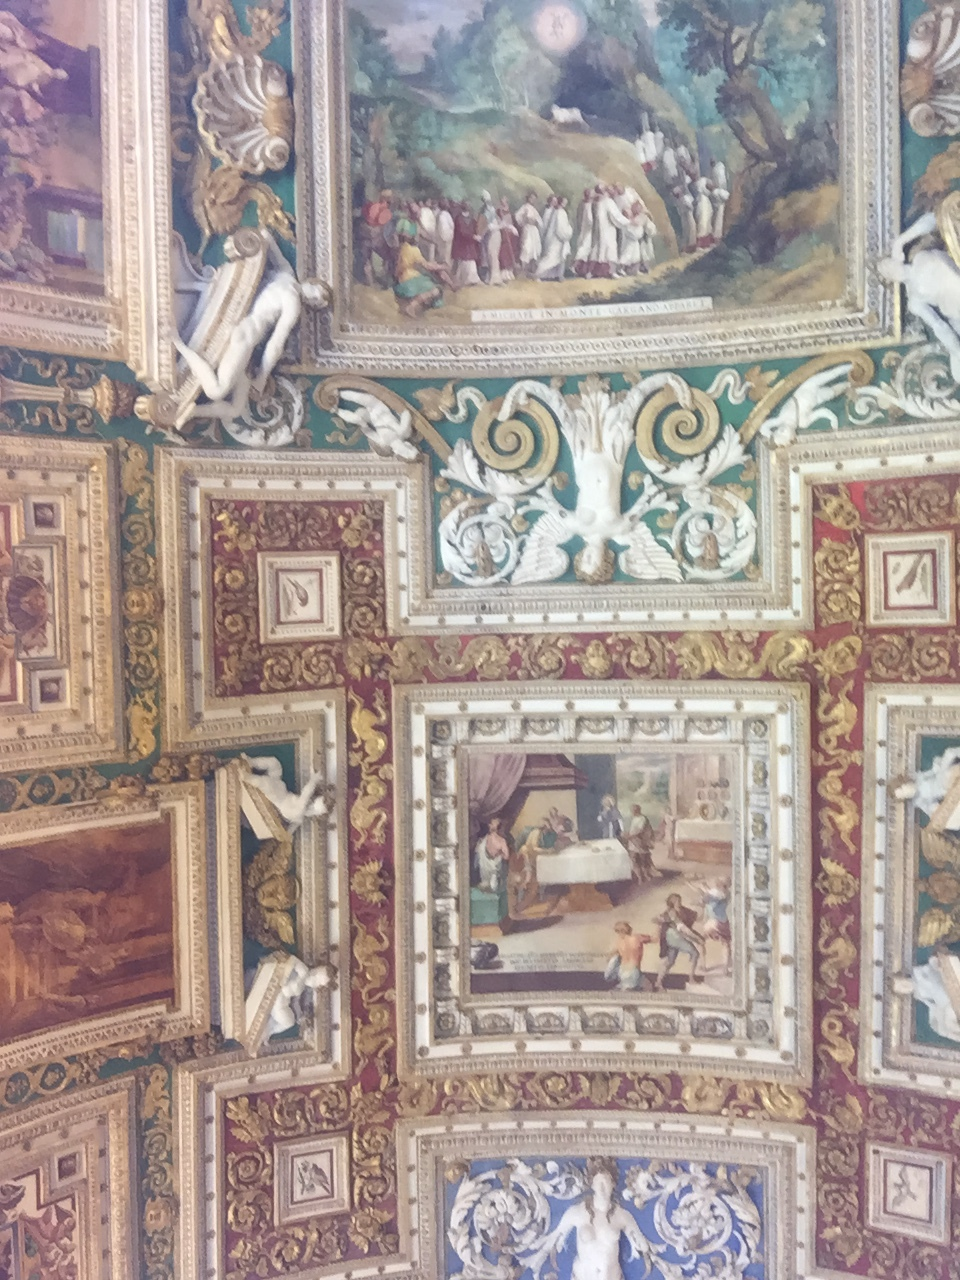 Ceiling in Vatican Gallery